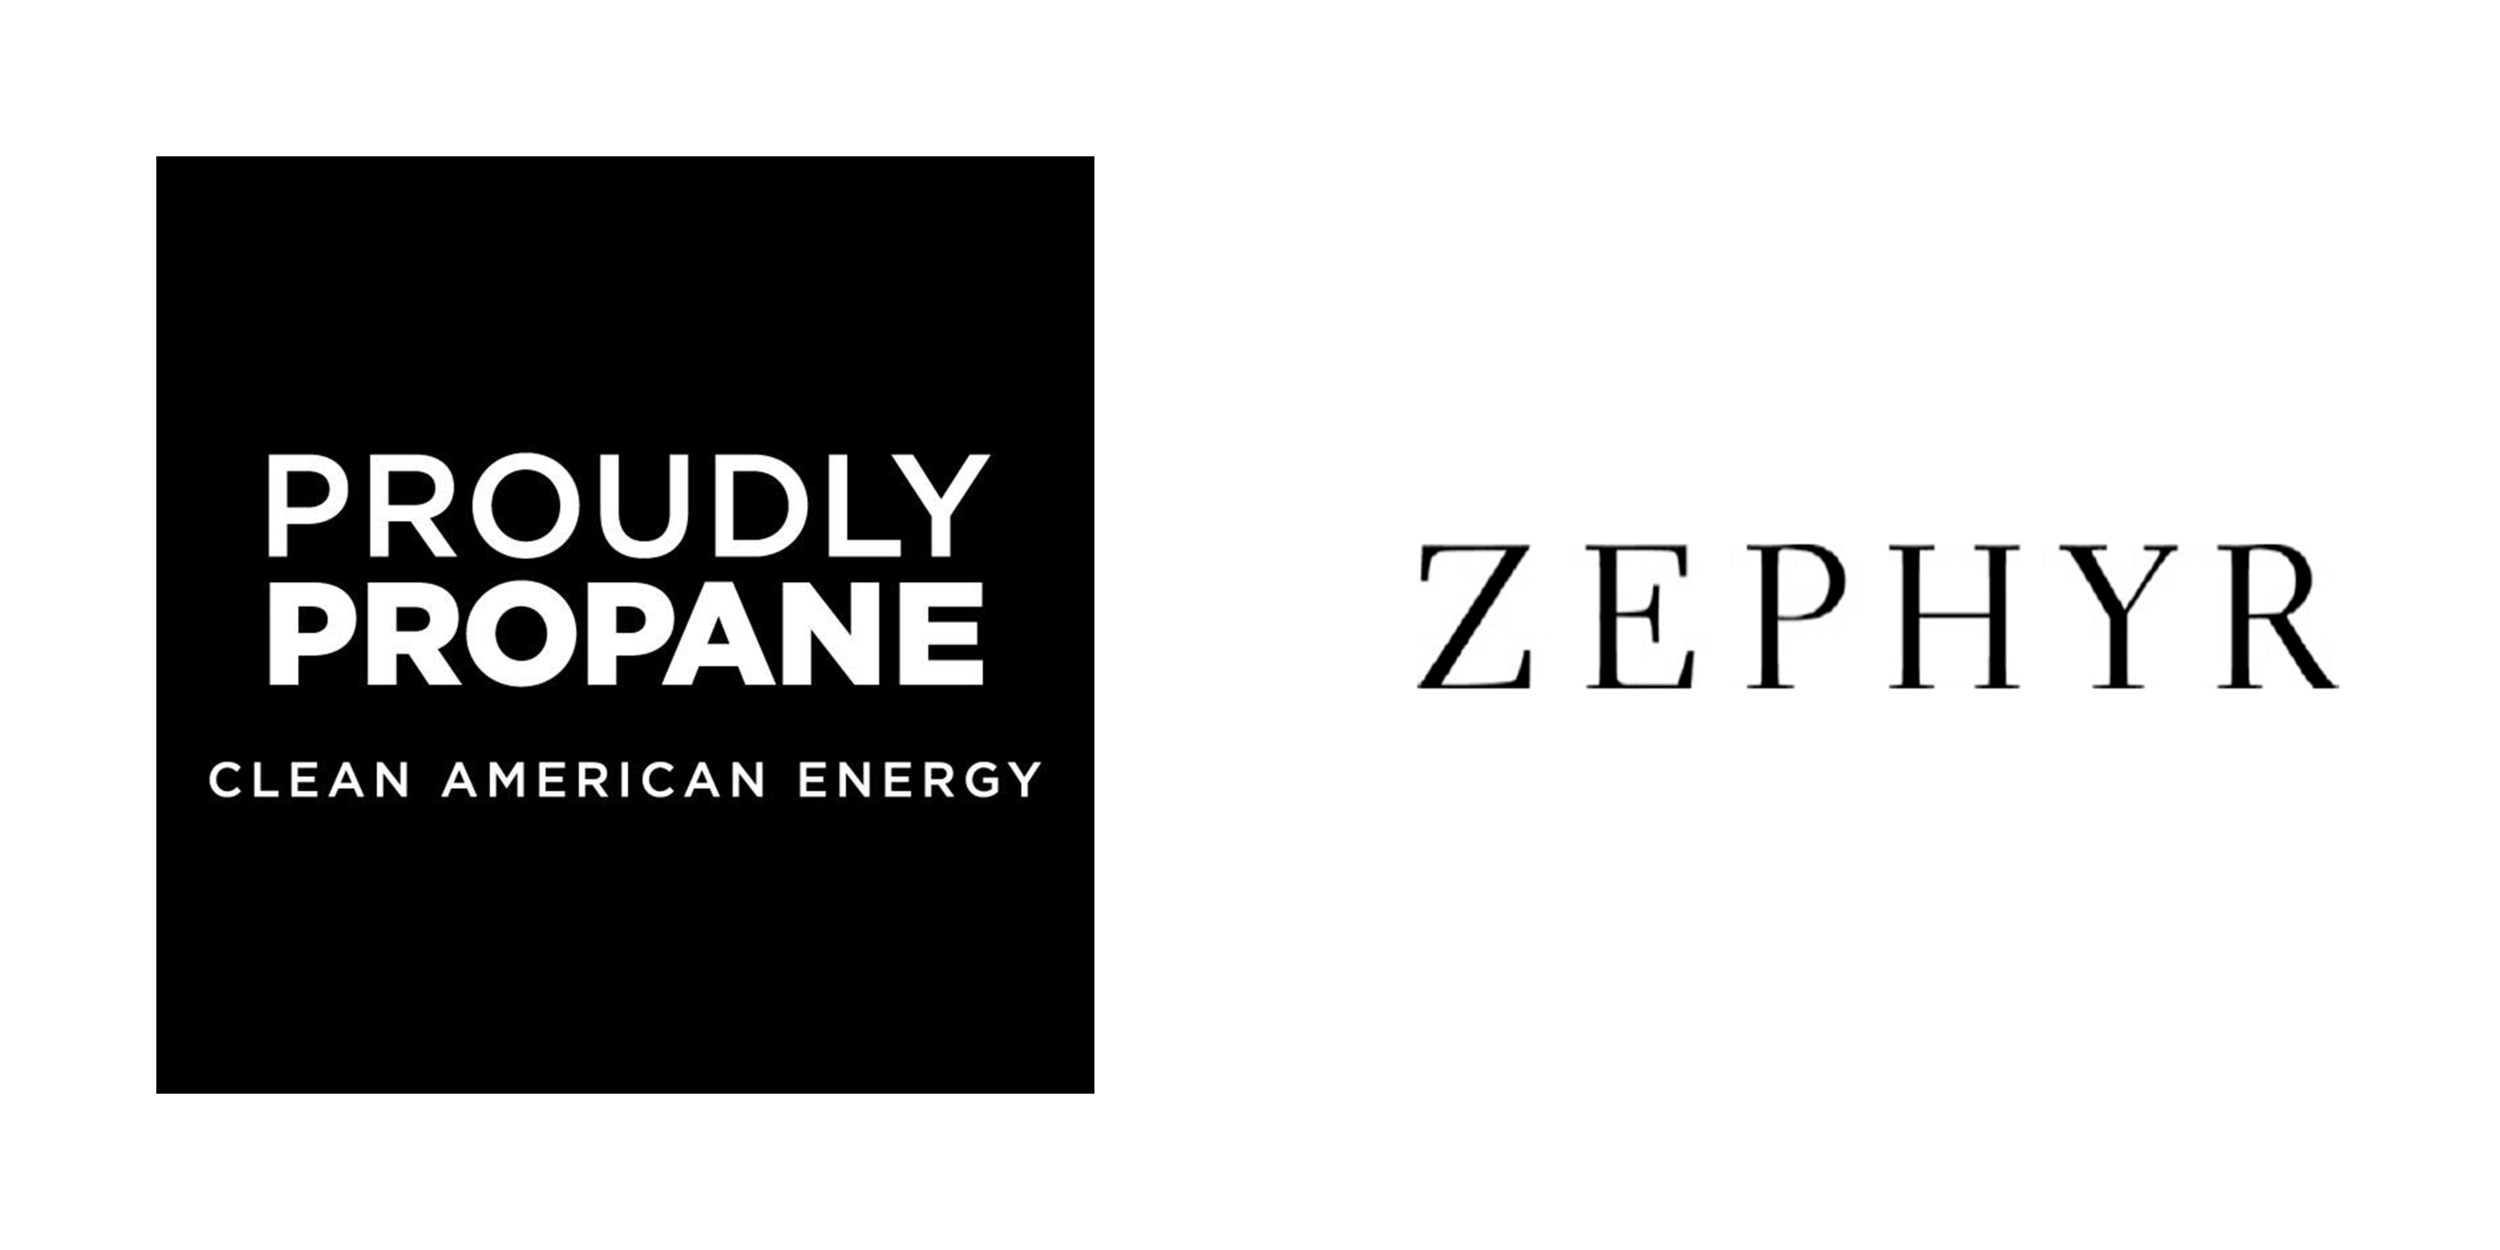 Proudly Propane + Zephyr.png